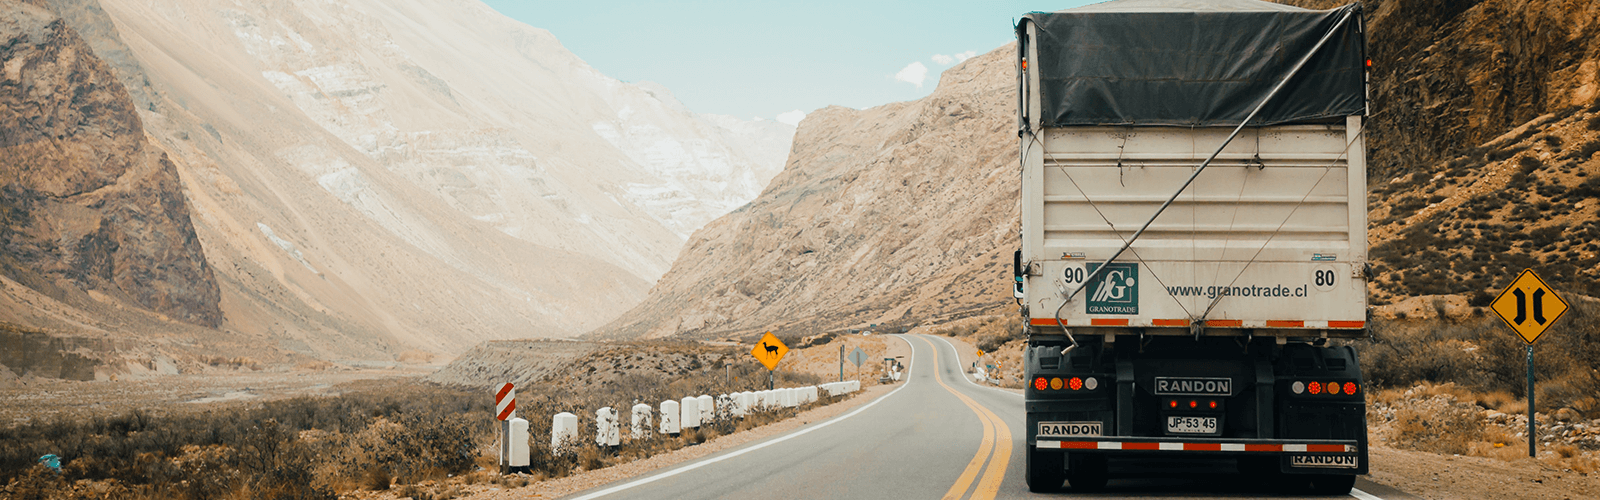 E-commerce inyecta vida al autotransporte